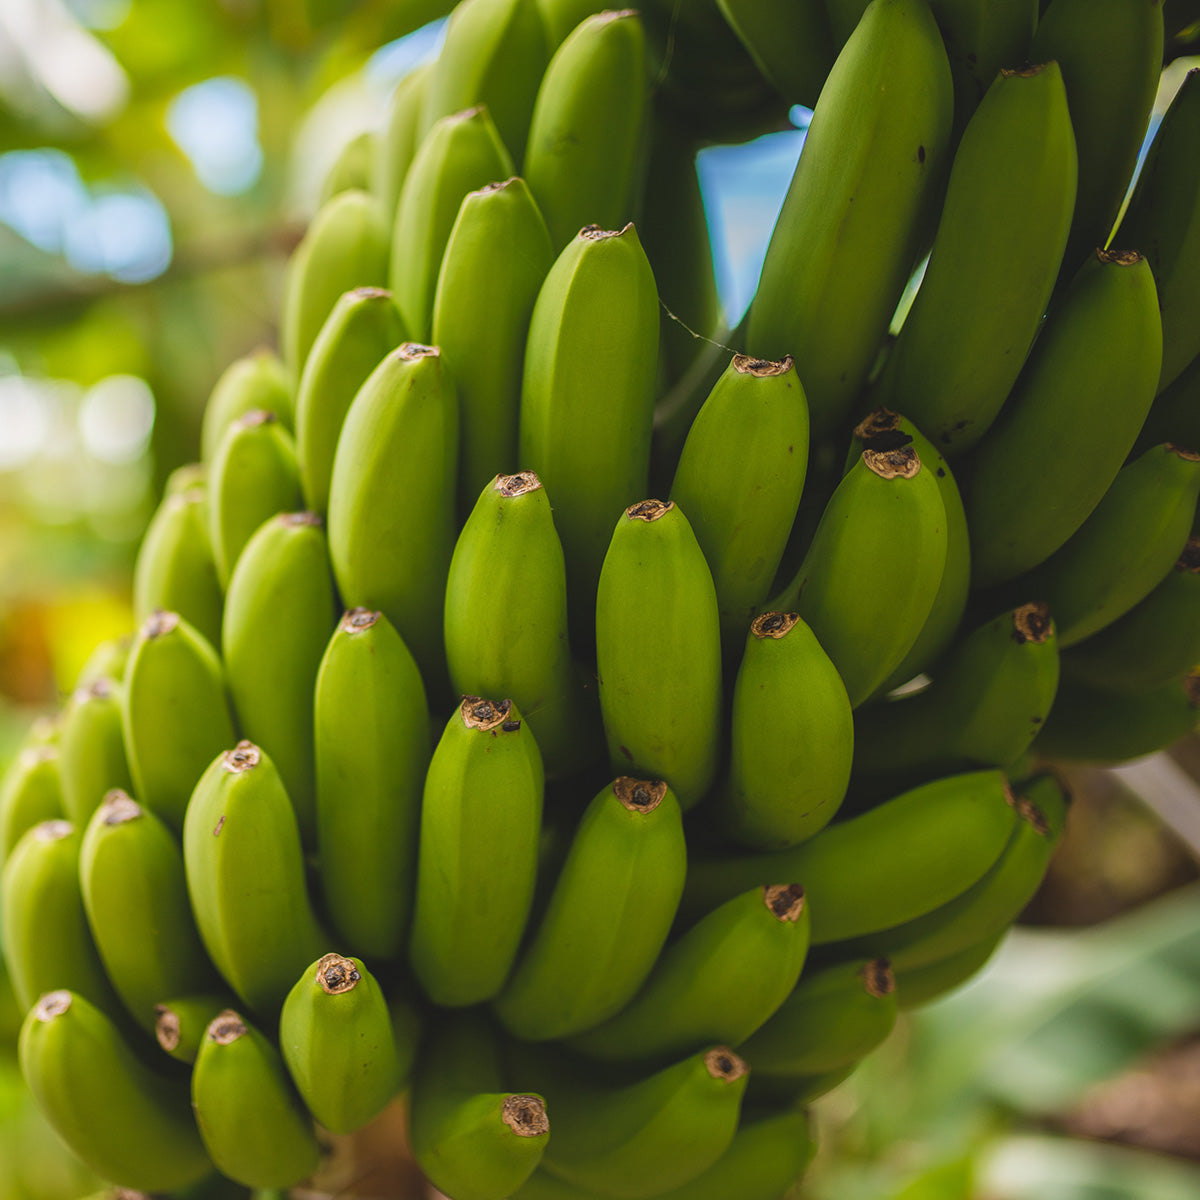 buy organic bananas online fruit box london uk